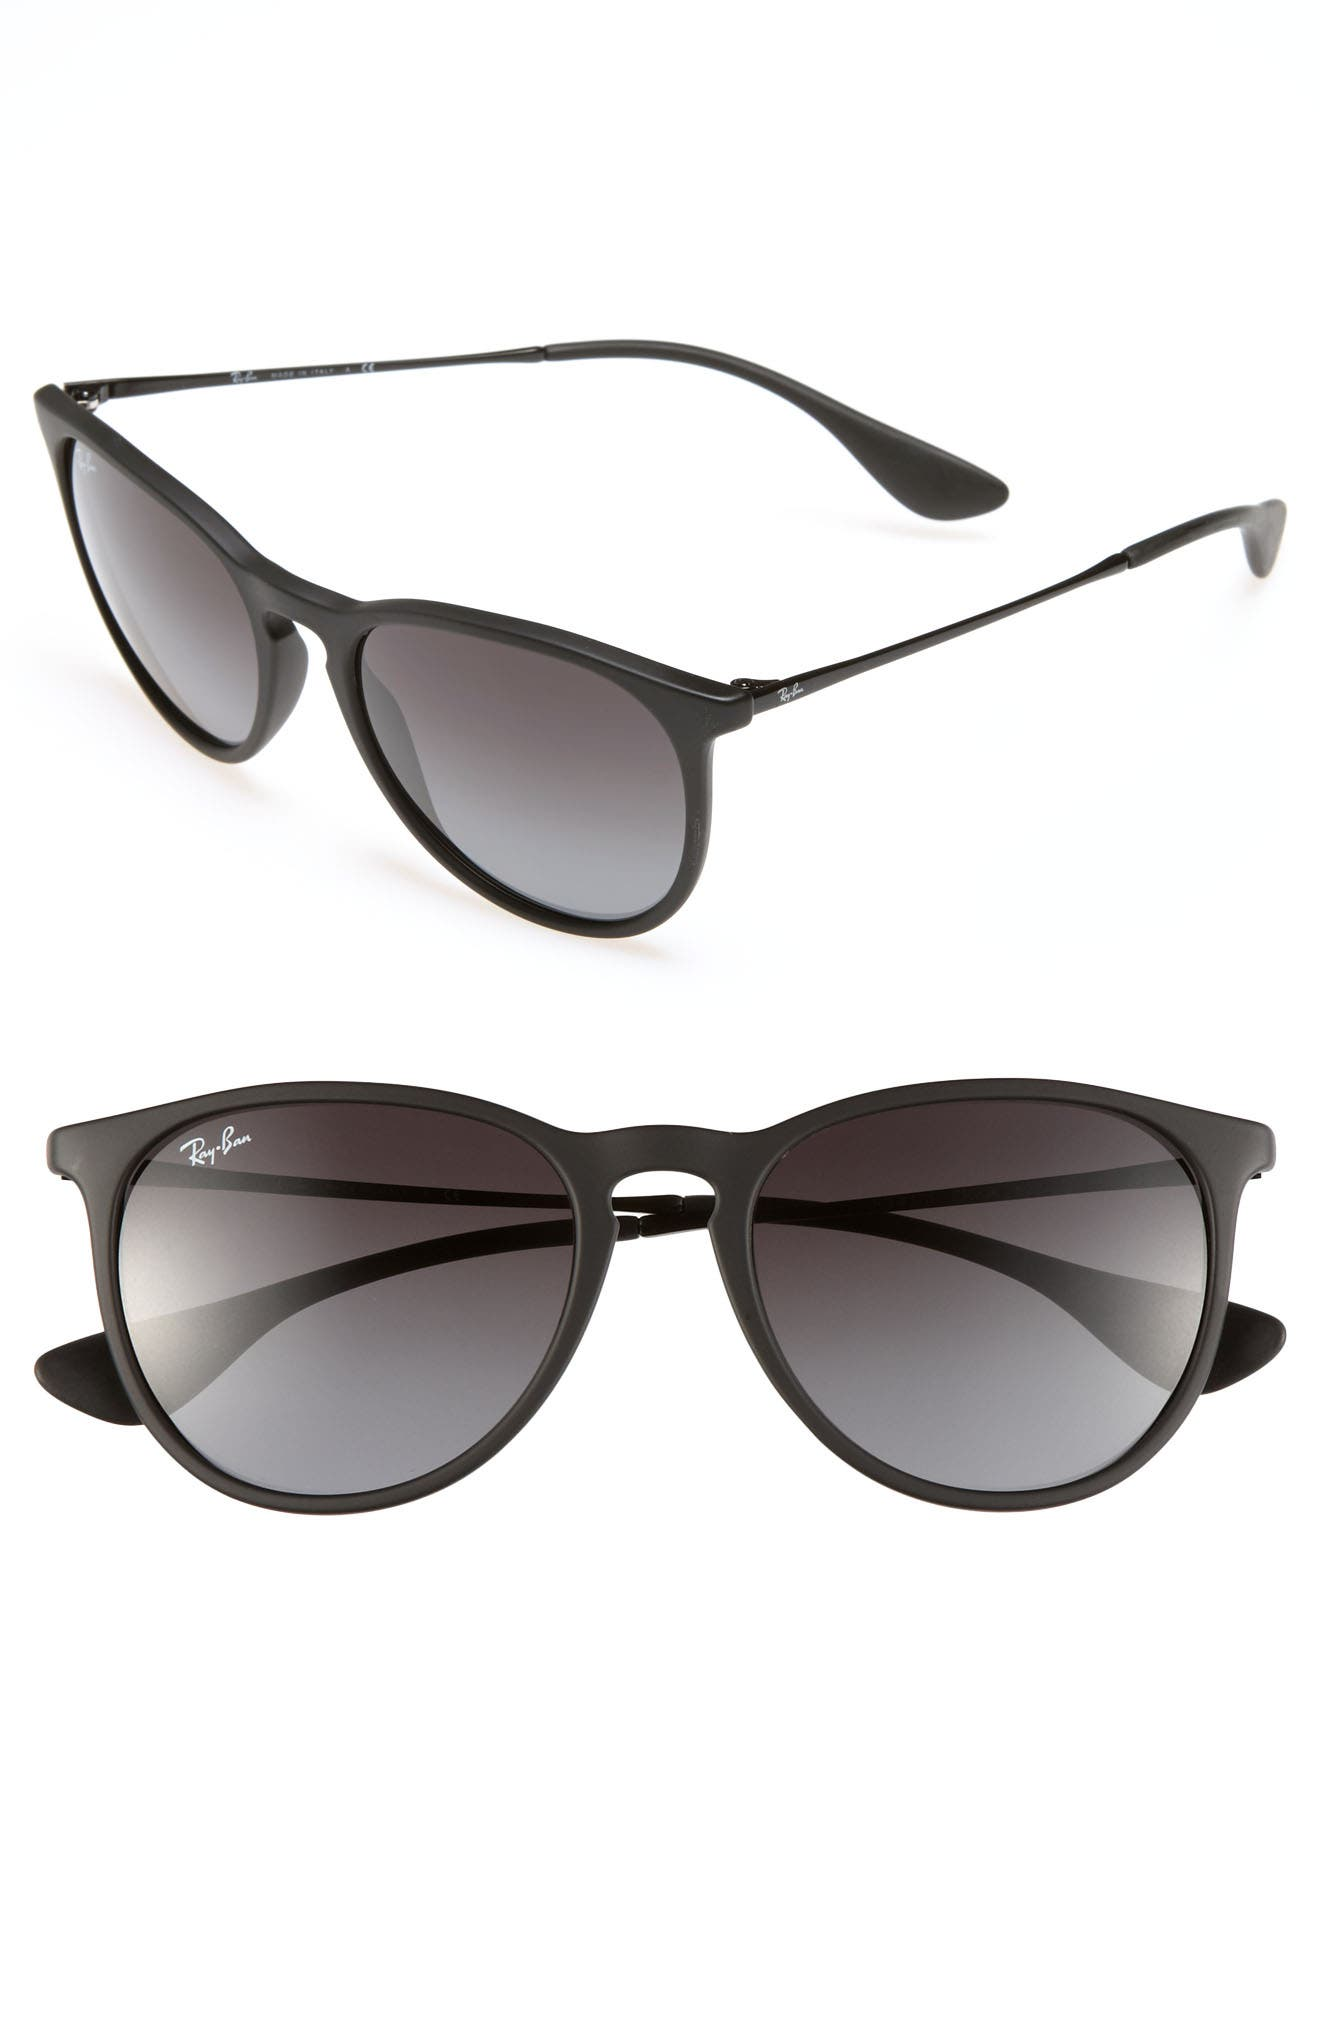 Erika Classic 54mm Sunglasses,                             Alternate thumbnail 2, color,                             BLACK/ GREY GRADIENT